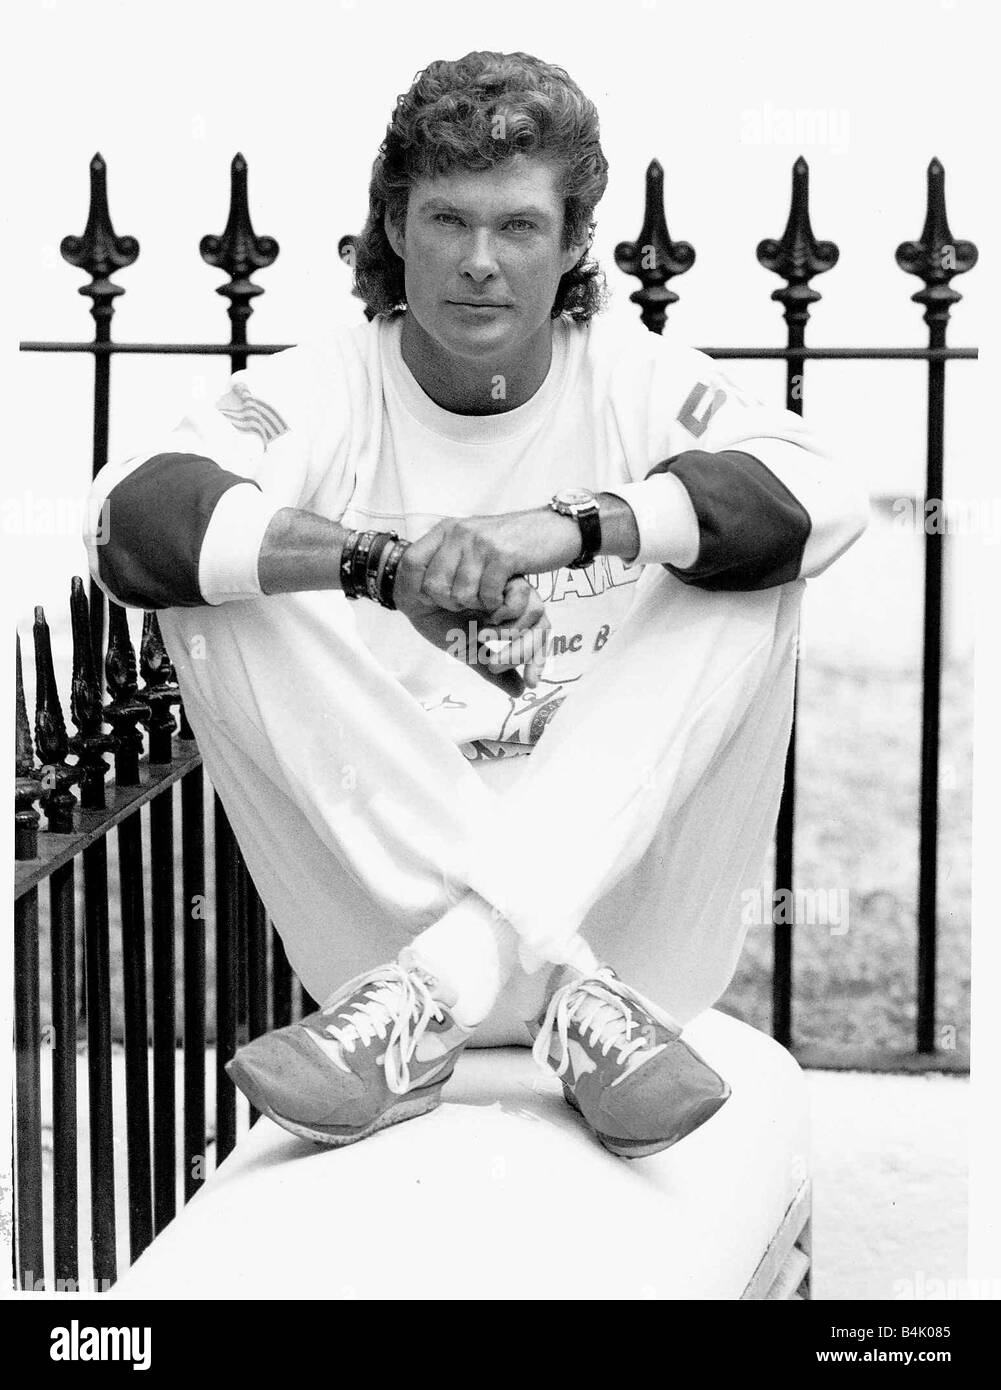 American Actor David Hasselhoff poses during a visit to London June 1989 Mirrorpix - Stock Image